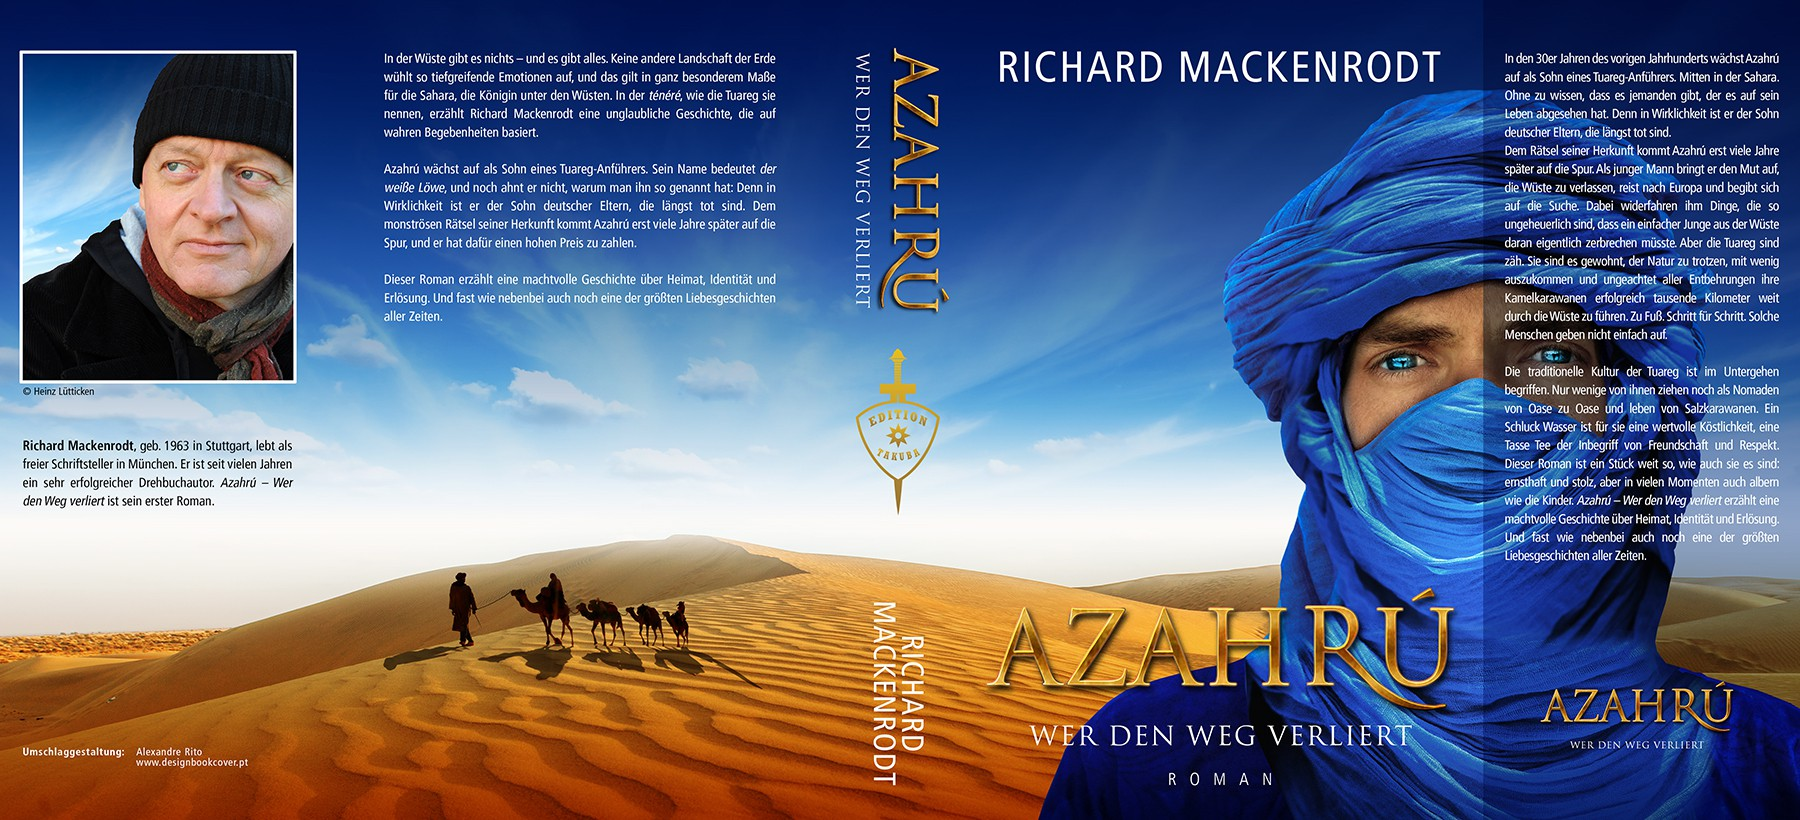 Create a book cover for an outstanding, breathtaking novel that takes place in the Sahara desert!